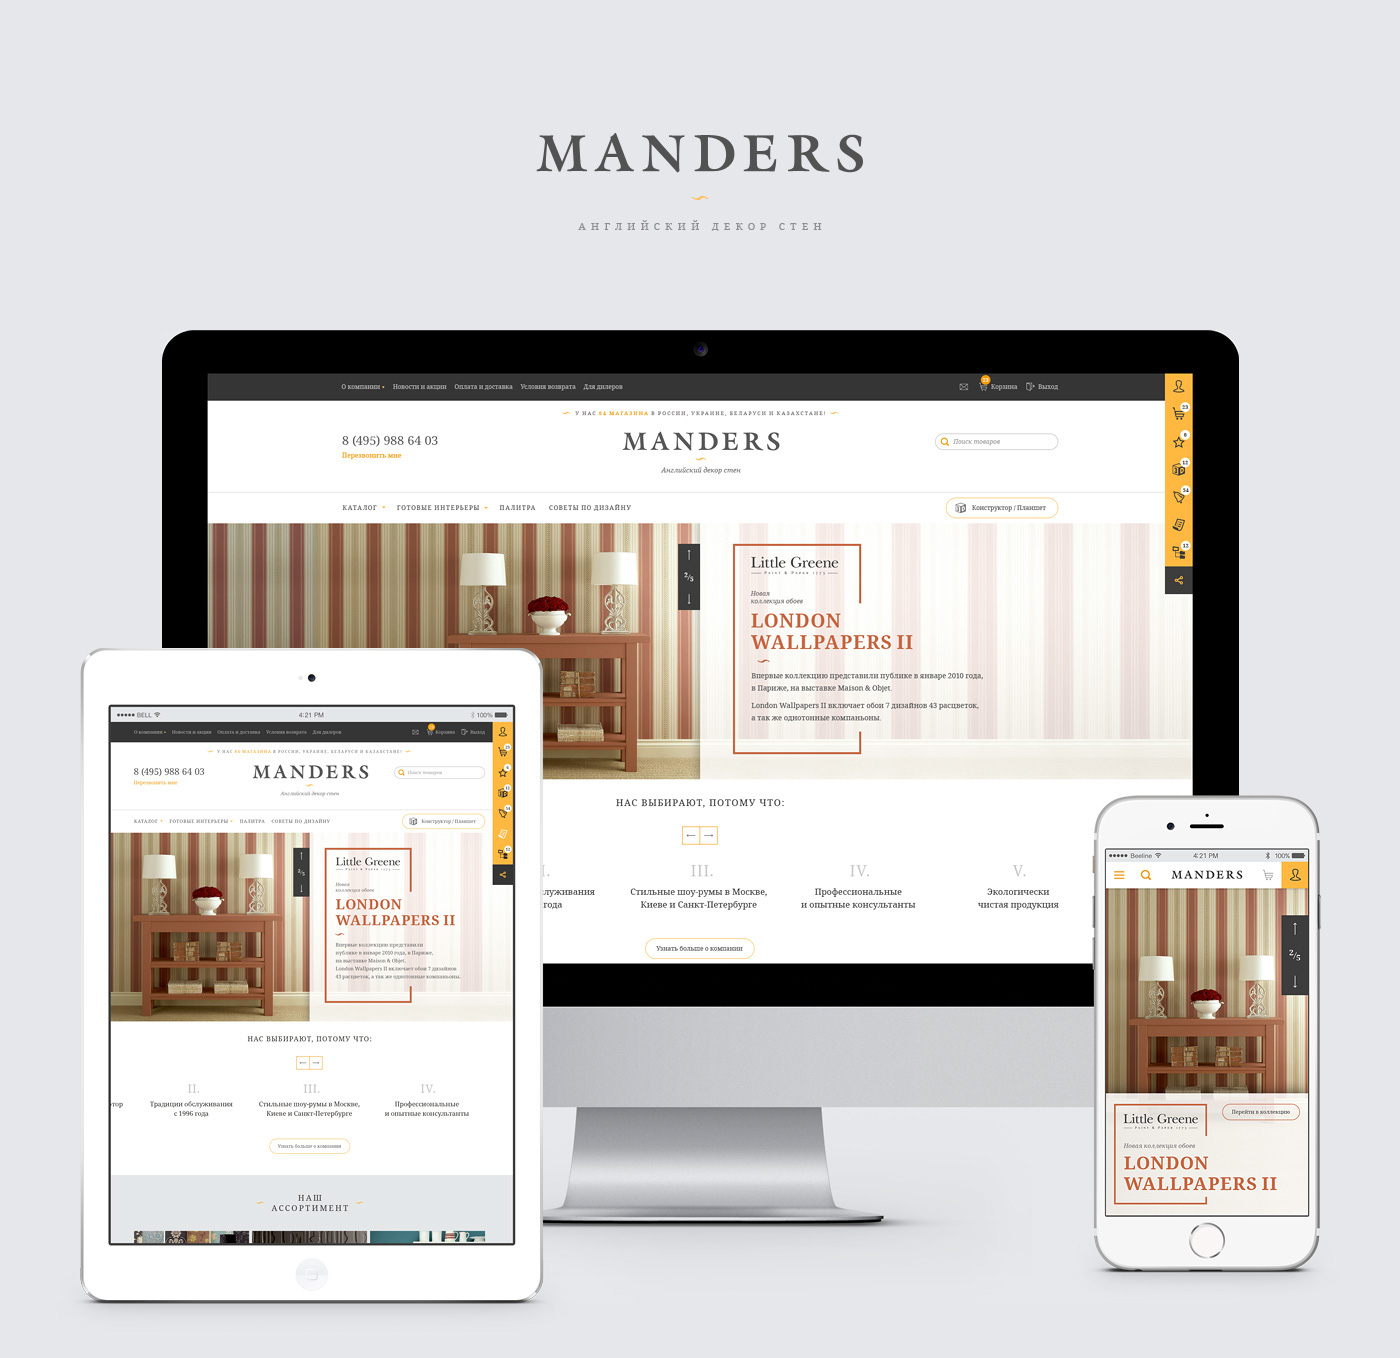 e-commerce Ecommerce shop store mobile Responsive Adaptive Wallpapers paints wall